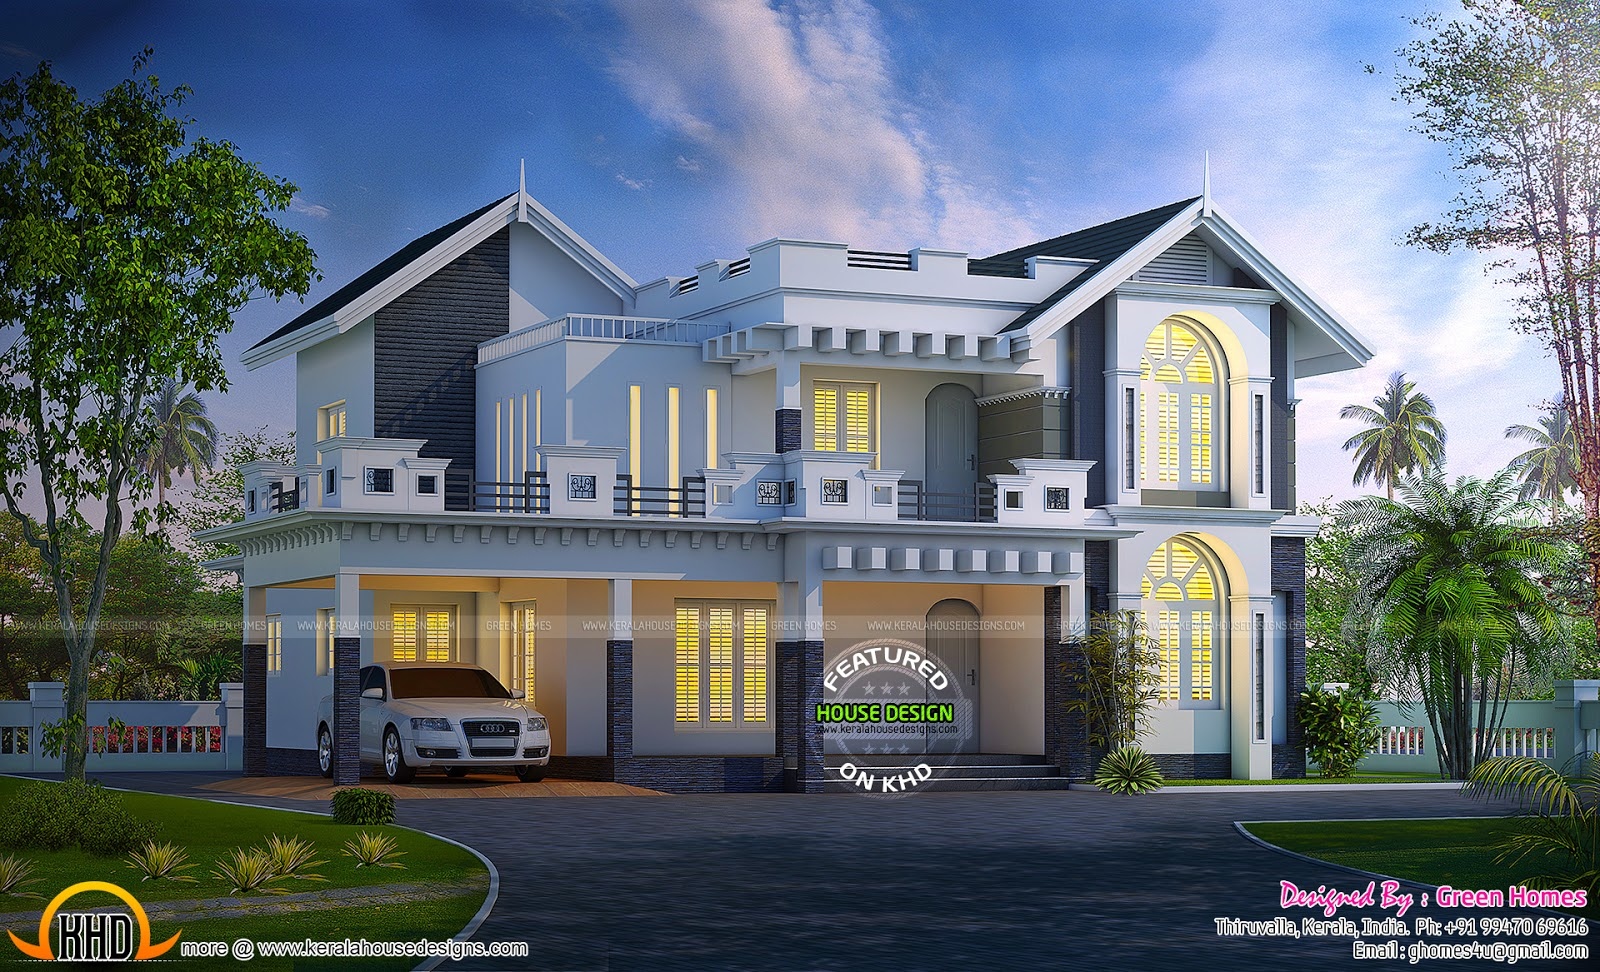 New kerala house plans for june 2015 keralahousedesigns for Latest house designs 2015